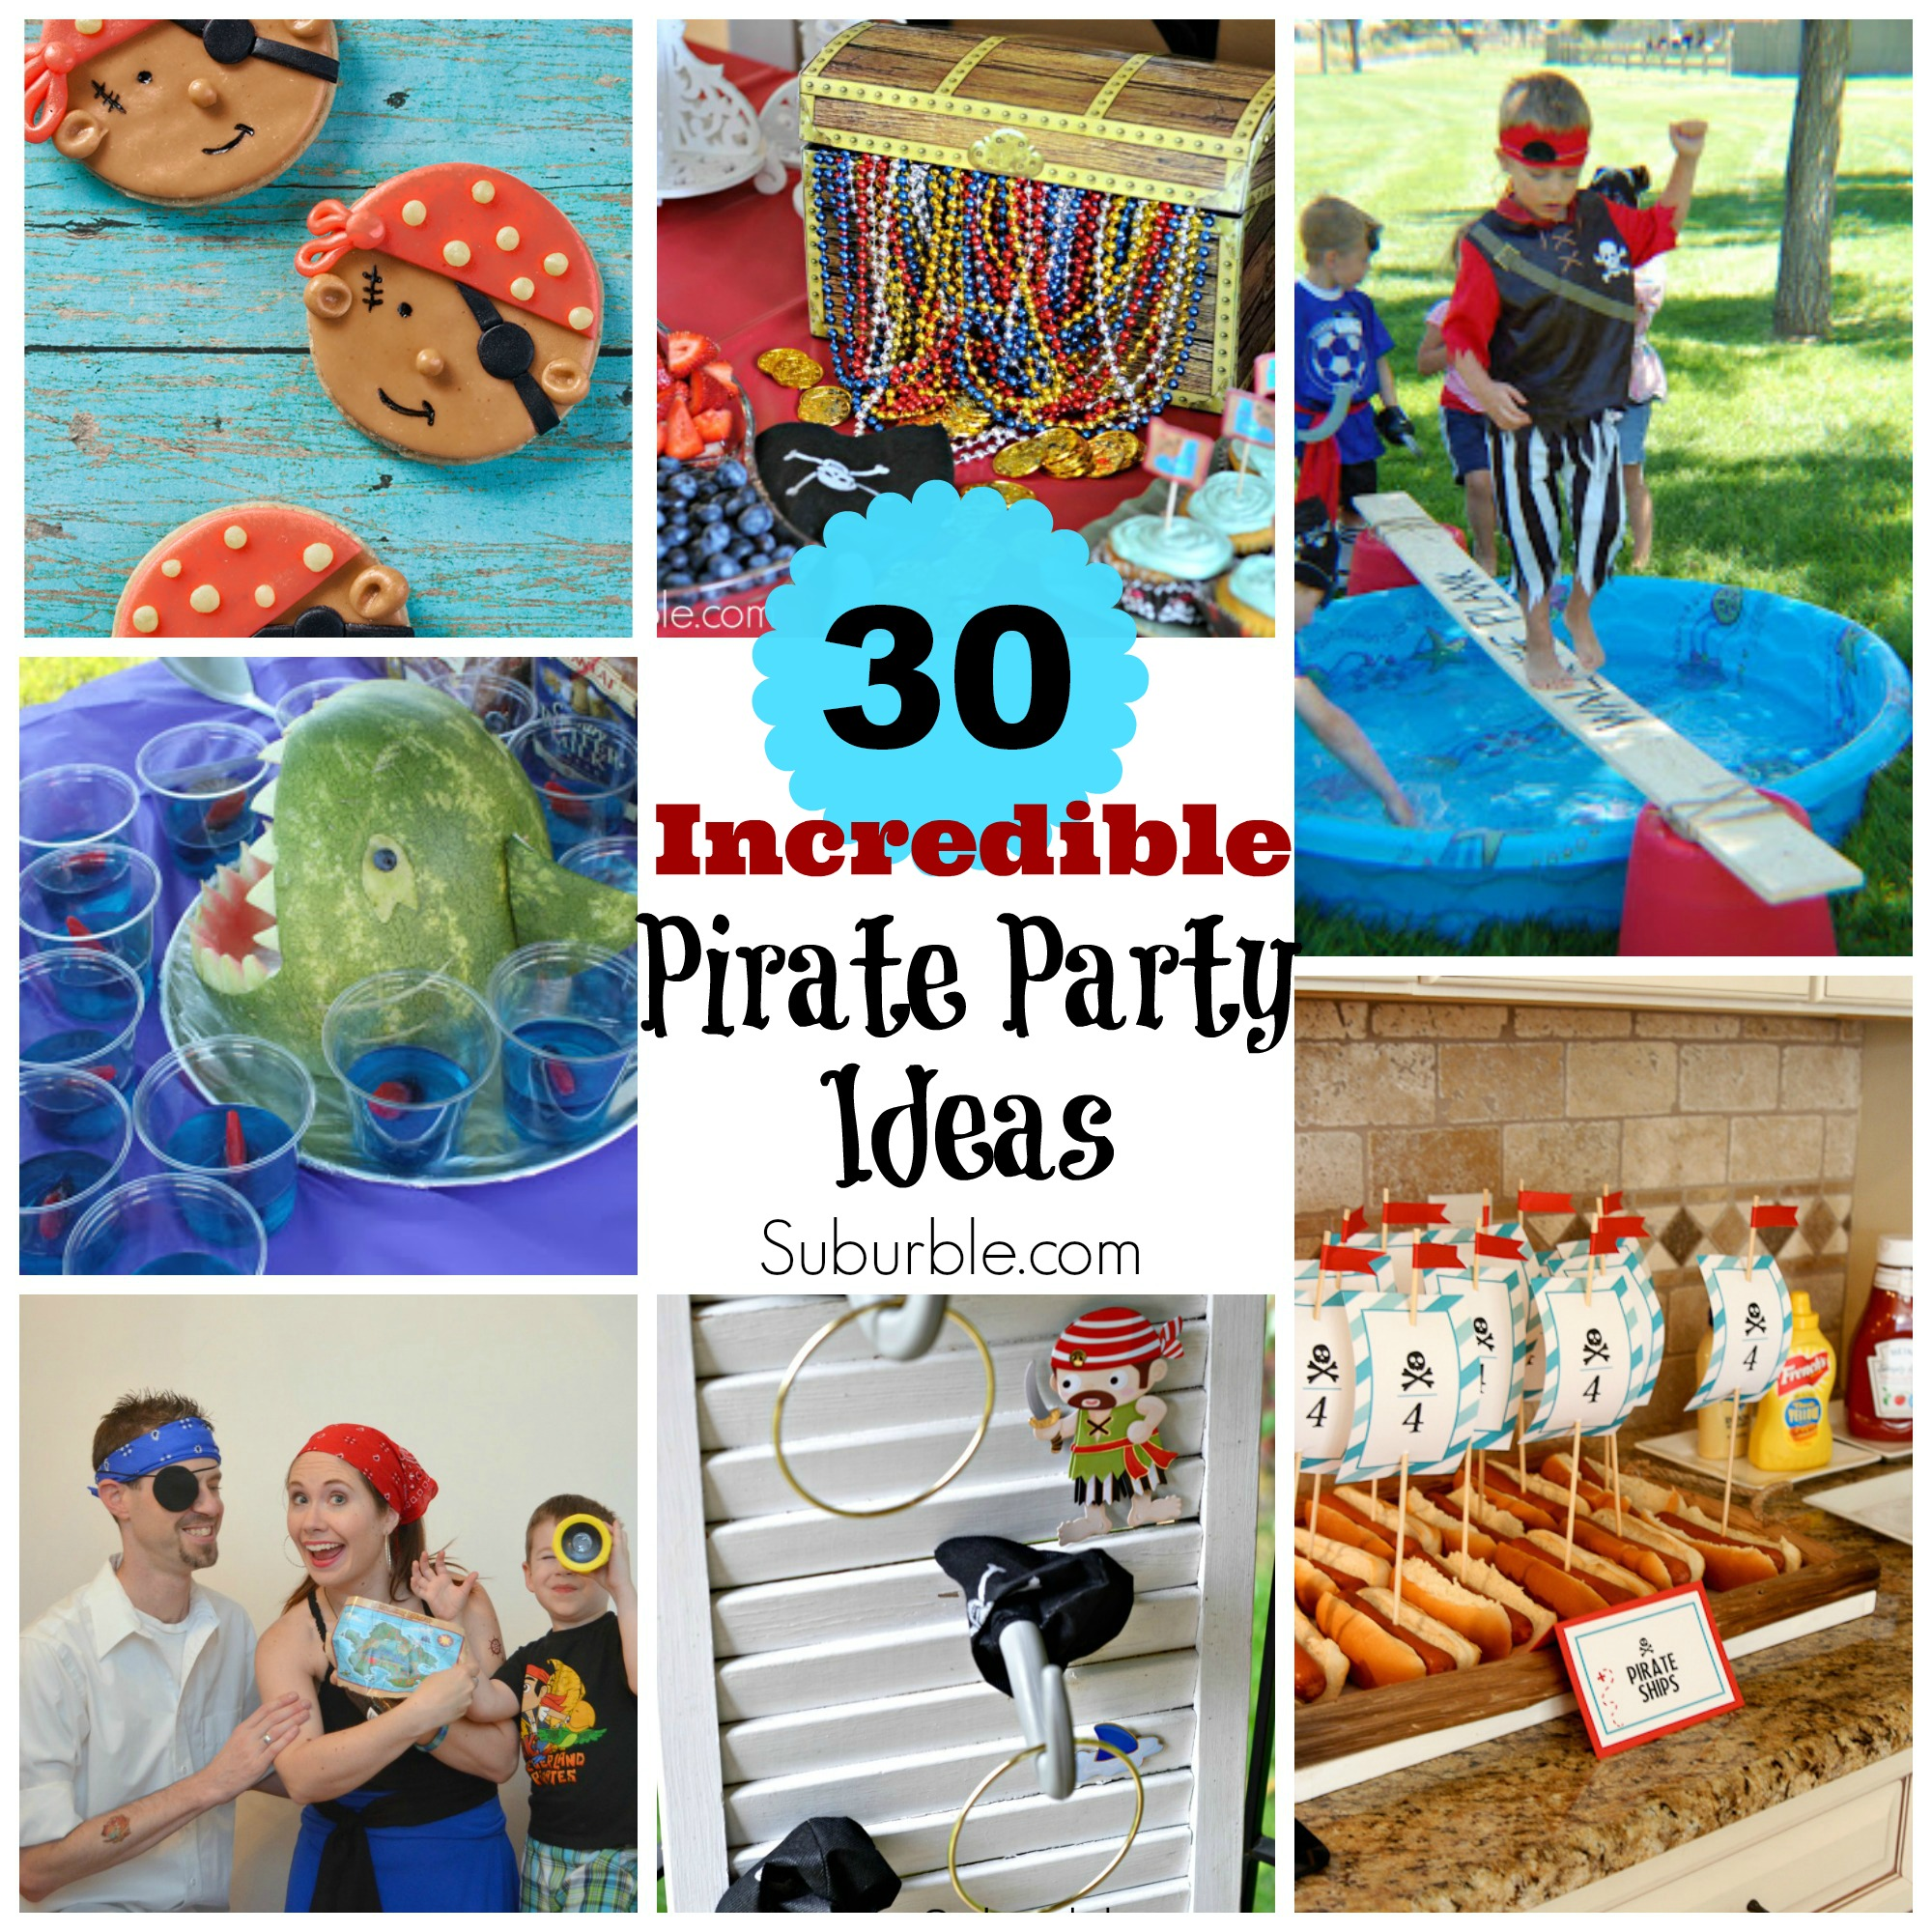 30 incredible pirate party ideas suburble - Th party theme ideas ...